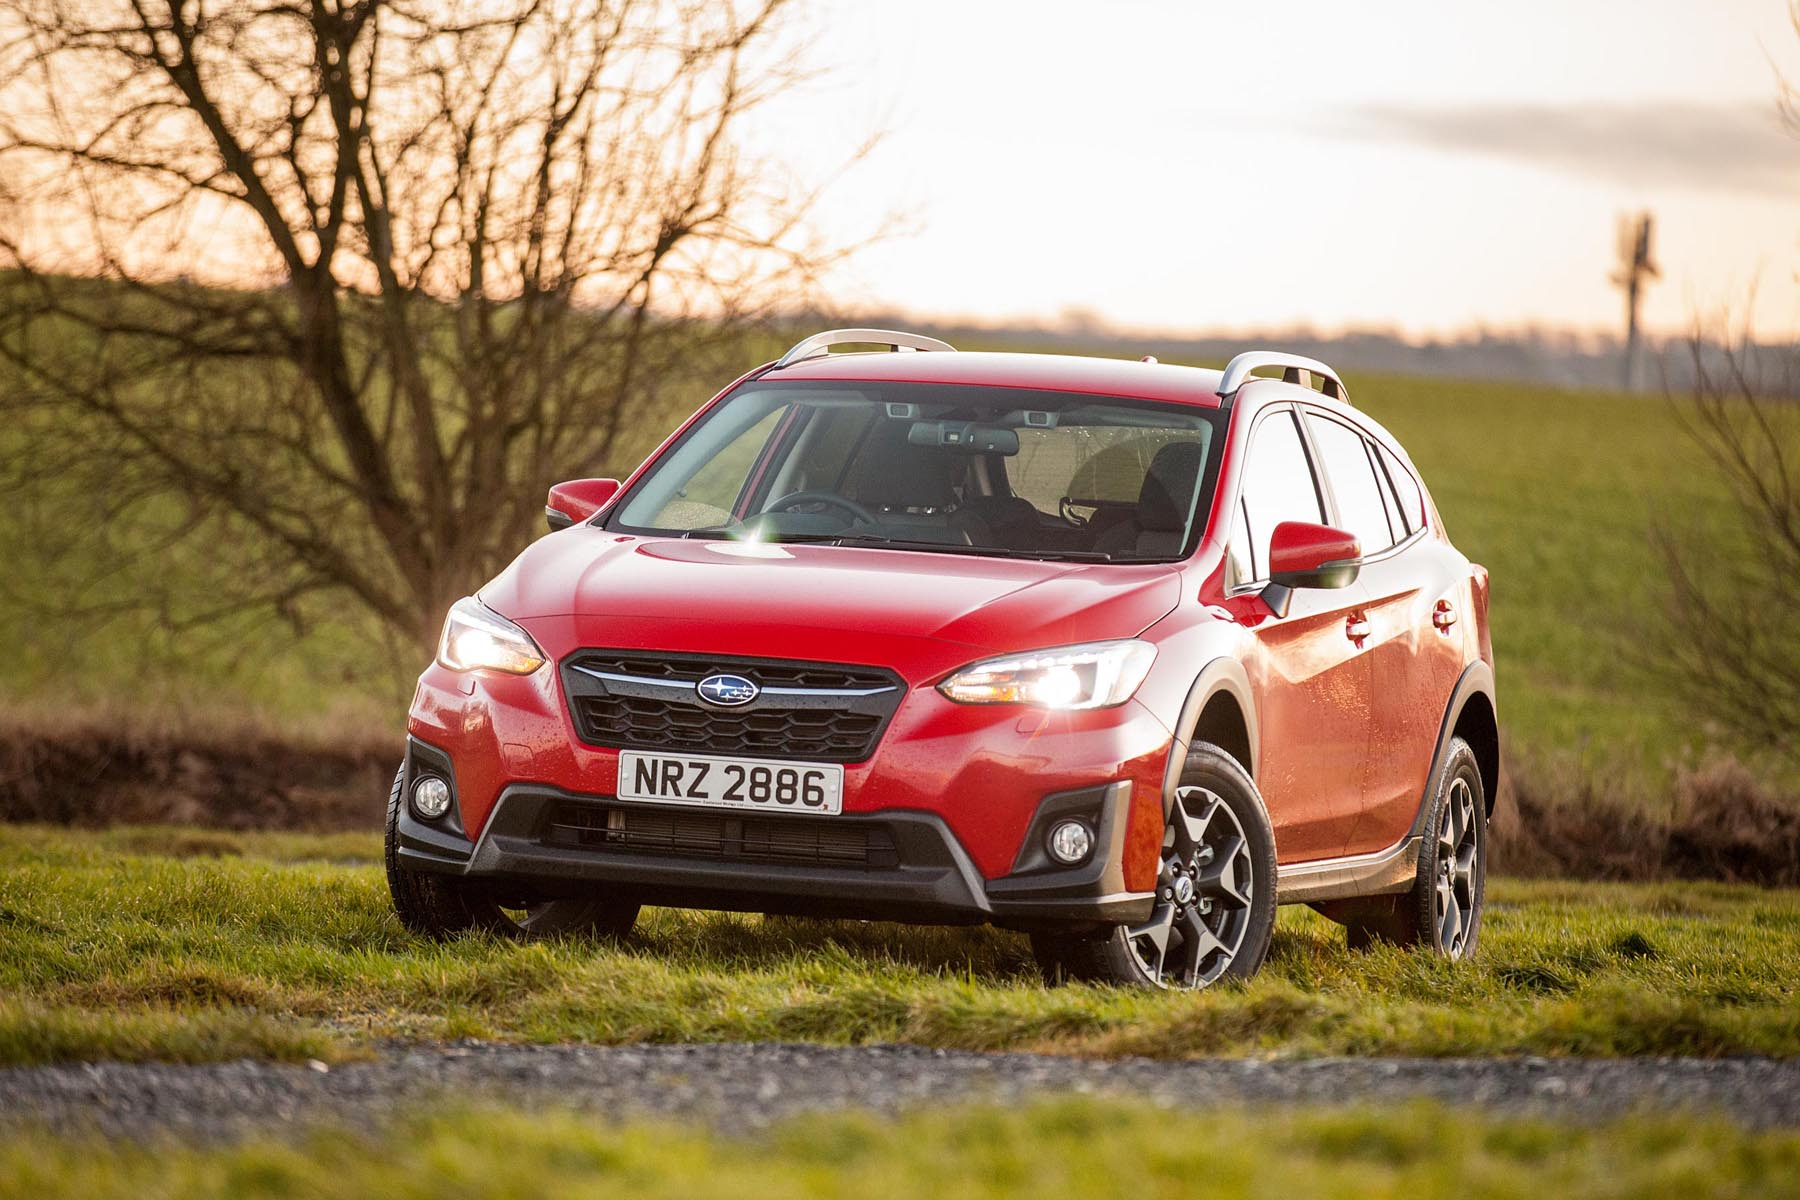 We Drive New Subaru Xv Ahead Of Its Official Launch Used Cars Ni Blog